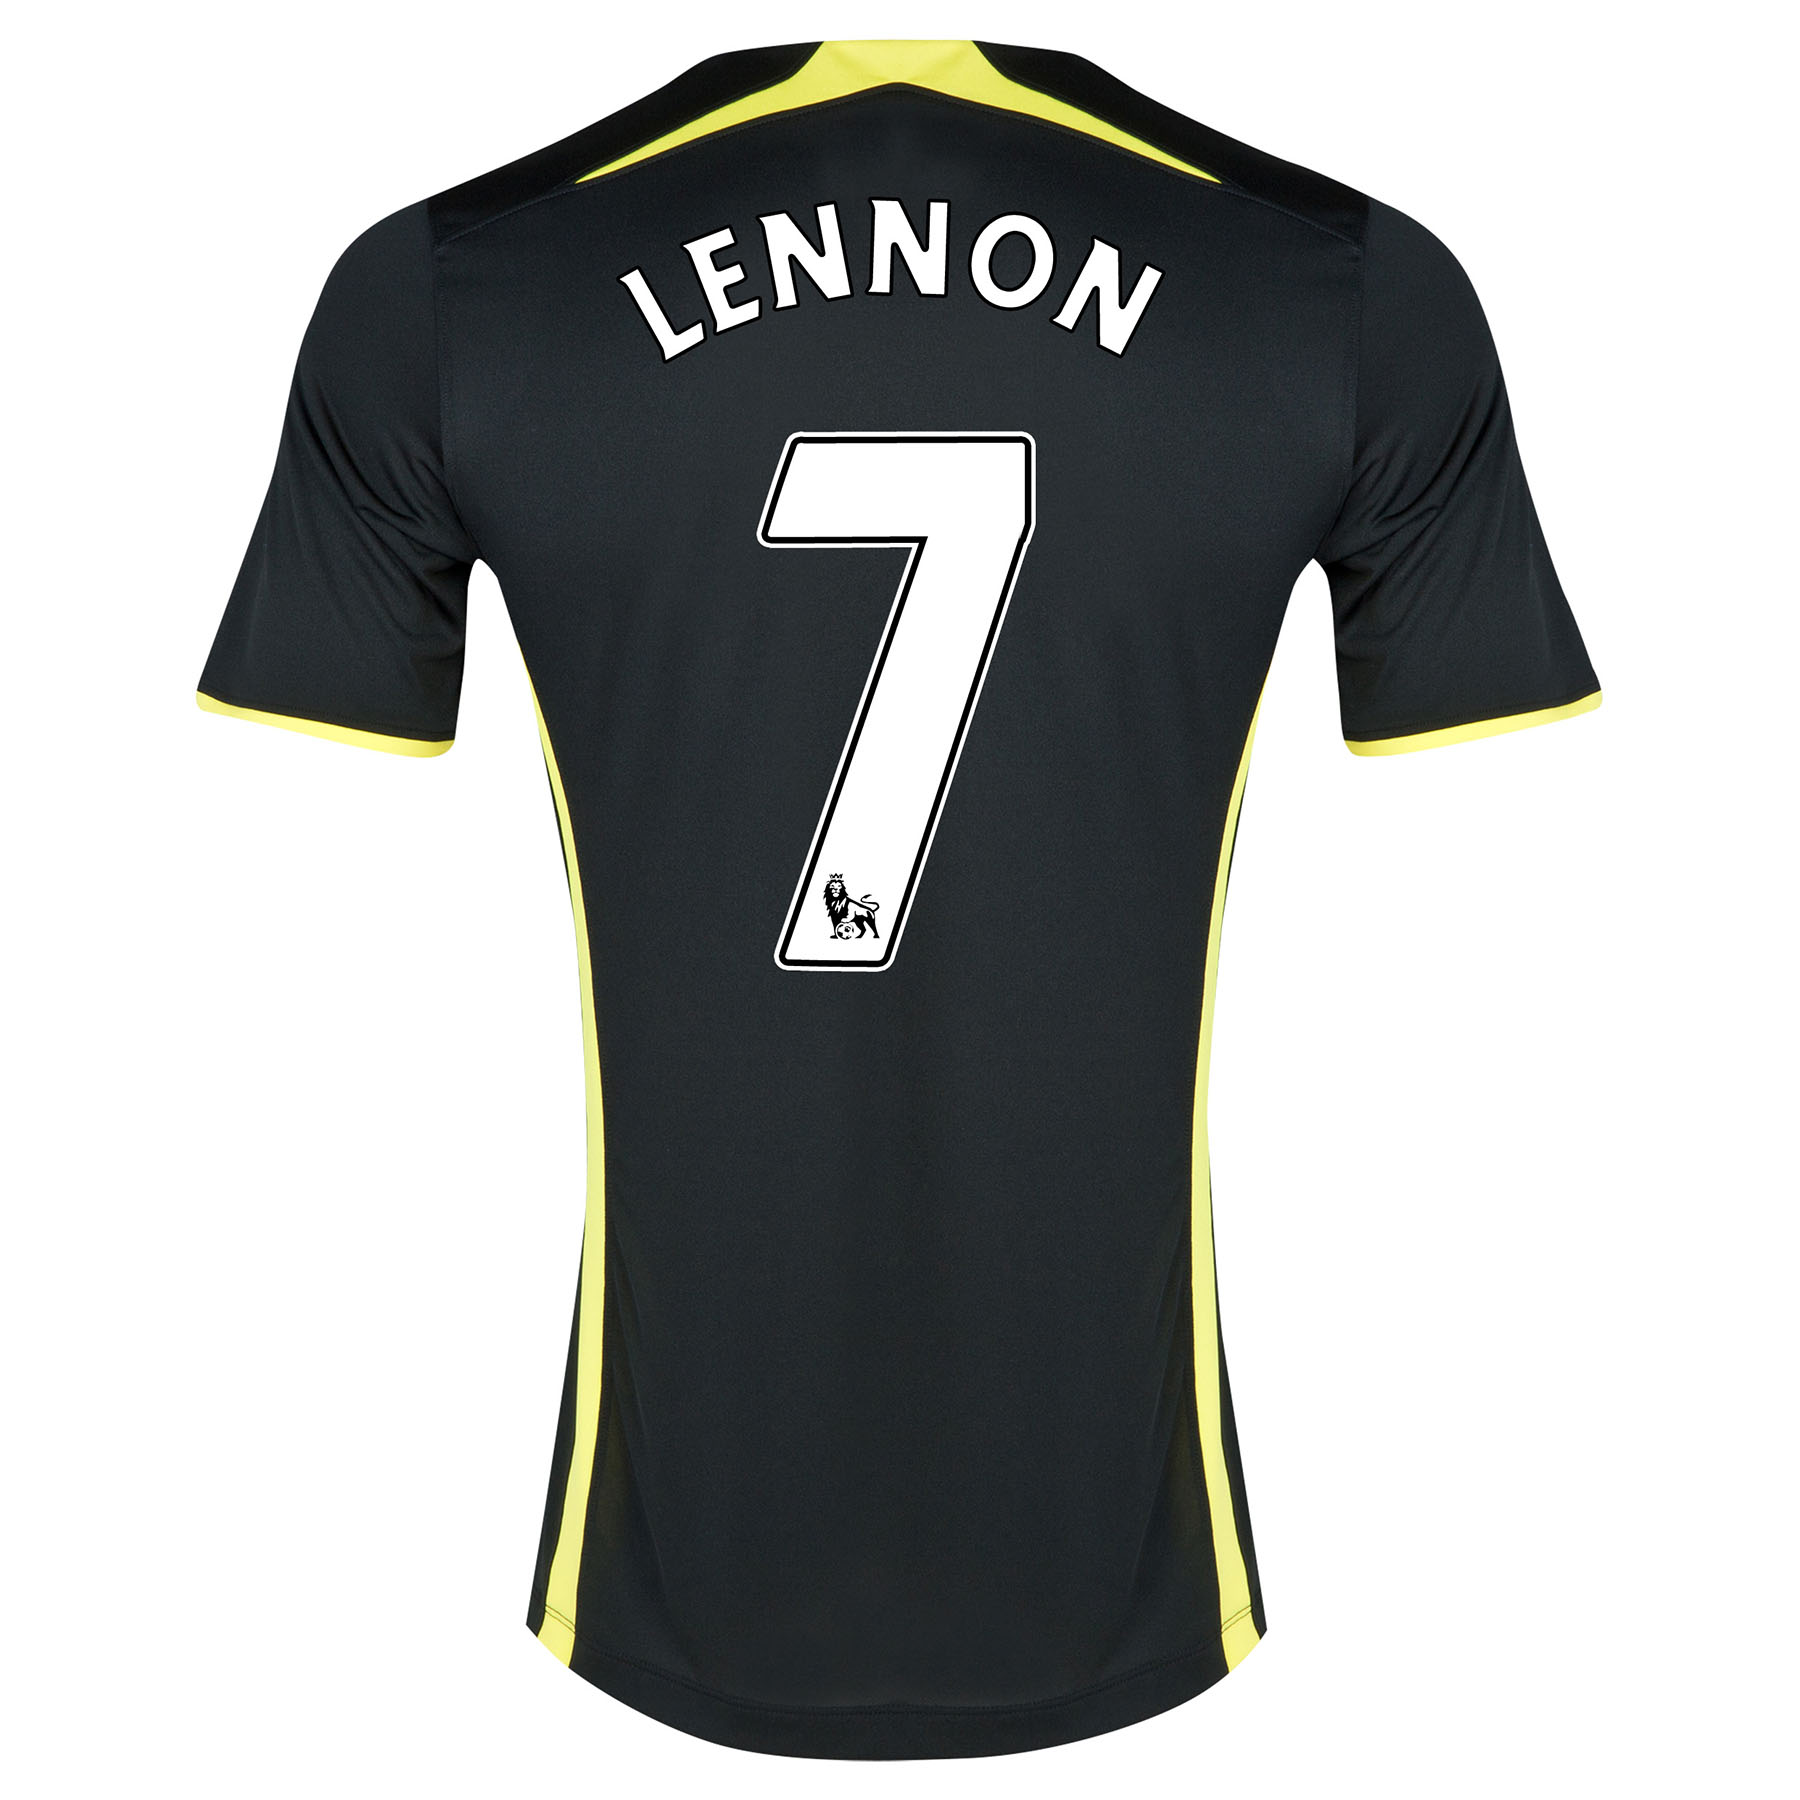 Tottenham Hotspur Away Shirt 2014/15 - Kids with Lennon 7 printing